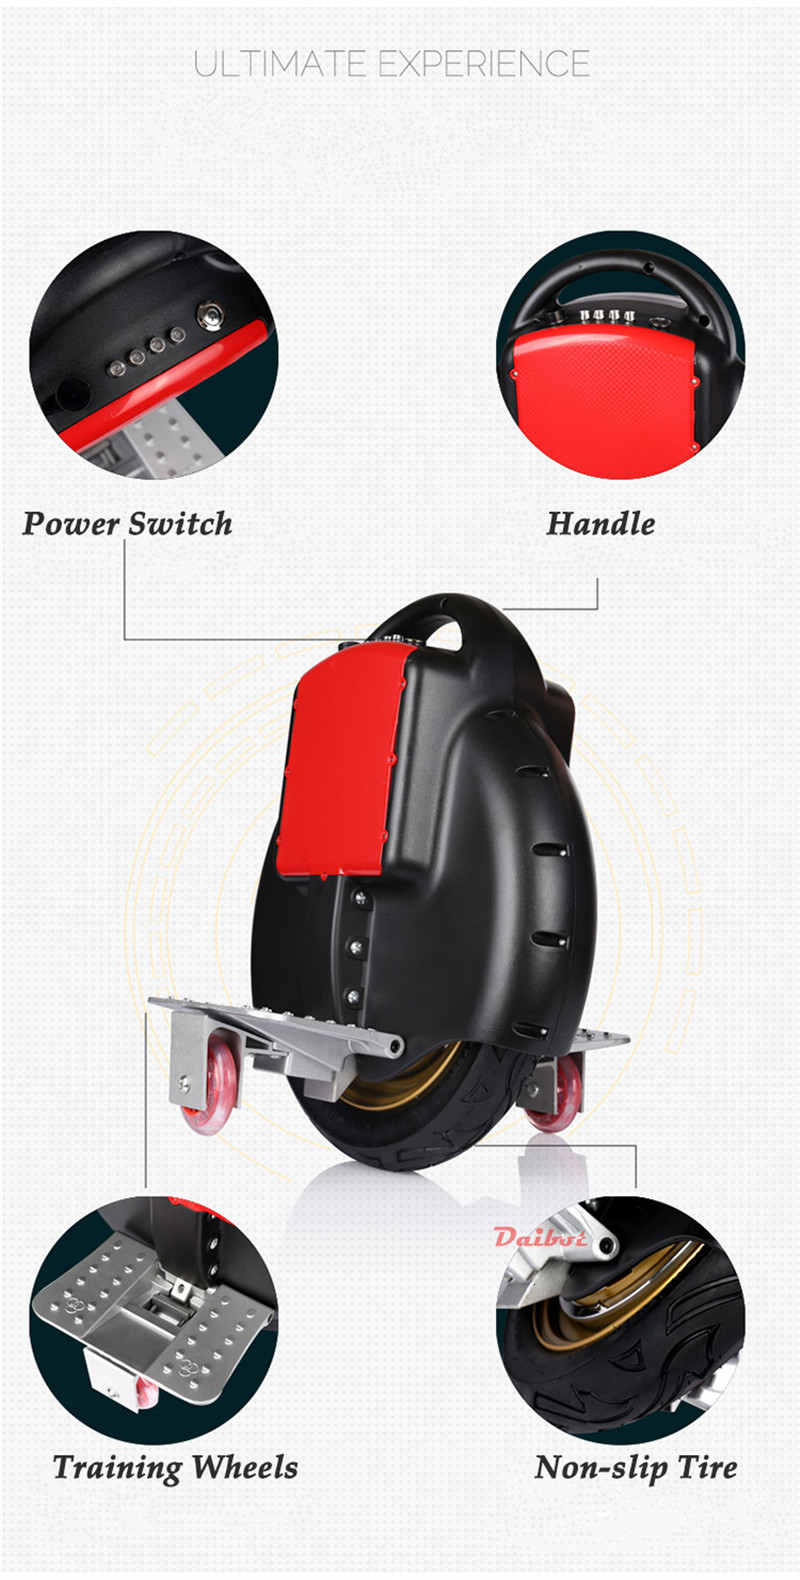 Daibot Monowheel Hoverboard One Wheel Self Balancing Scooters 14inch 350W 60V Portable Electric Unicycle One With Training Wheel (1)